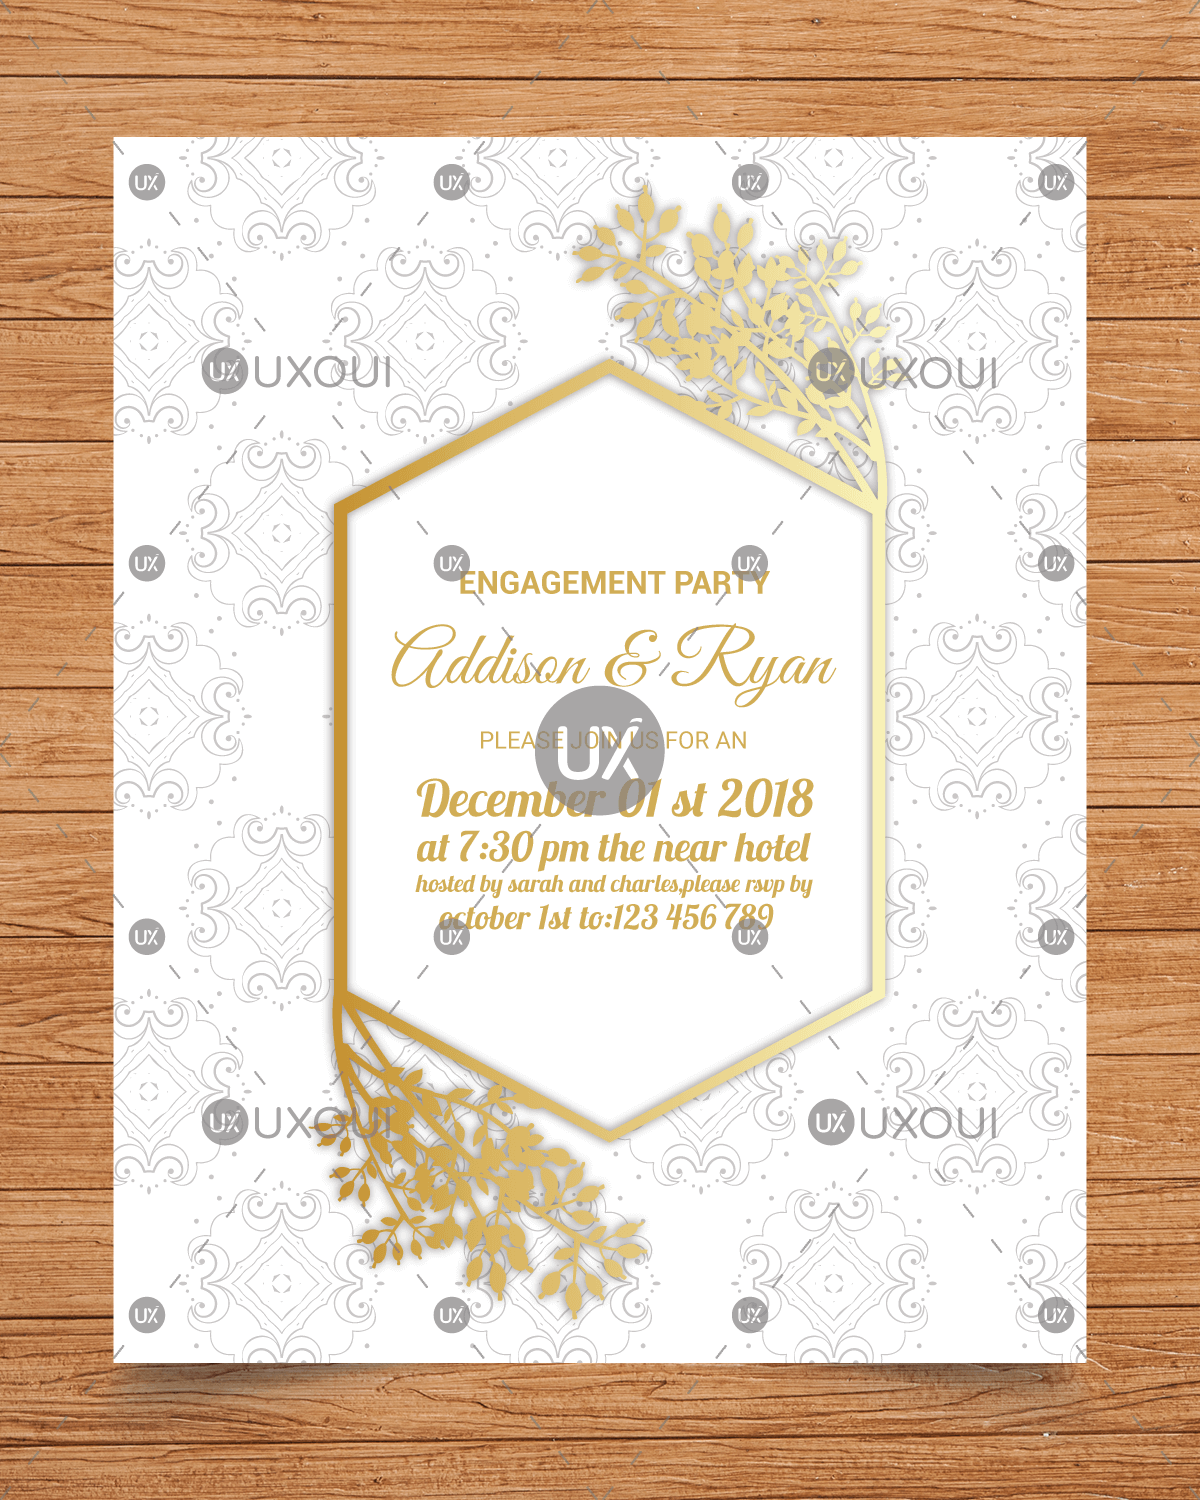 Wedding Engagement Party Invitation Card Template Design Vector With Flowers